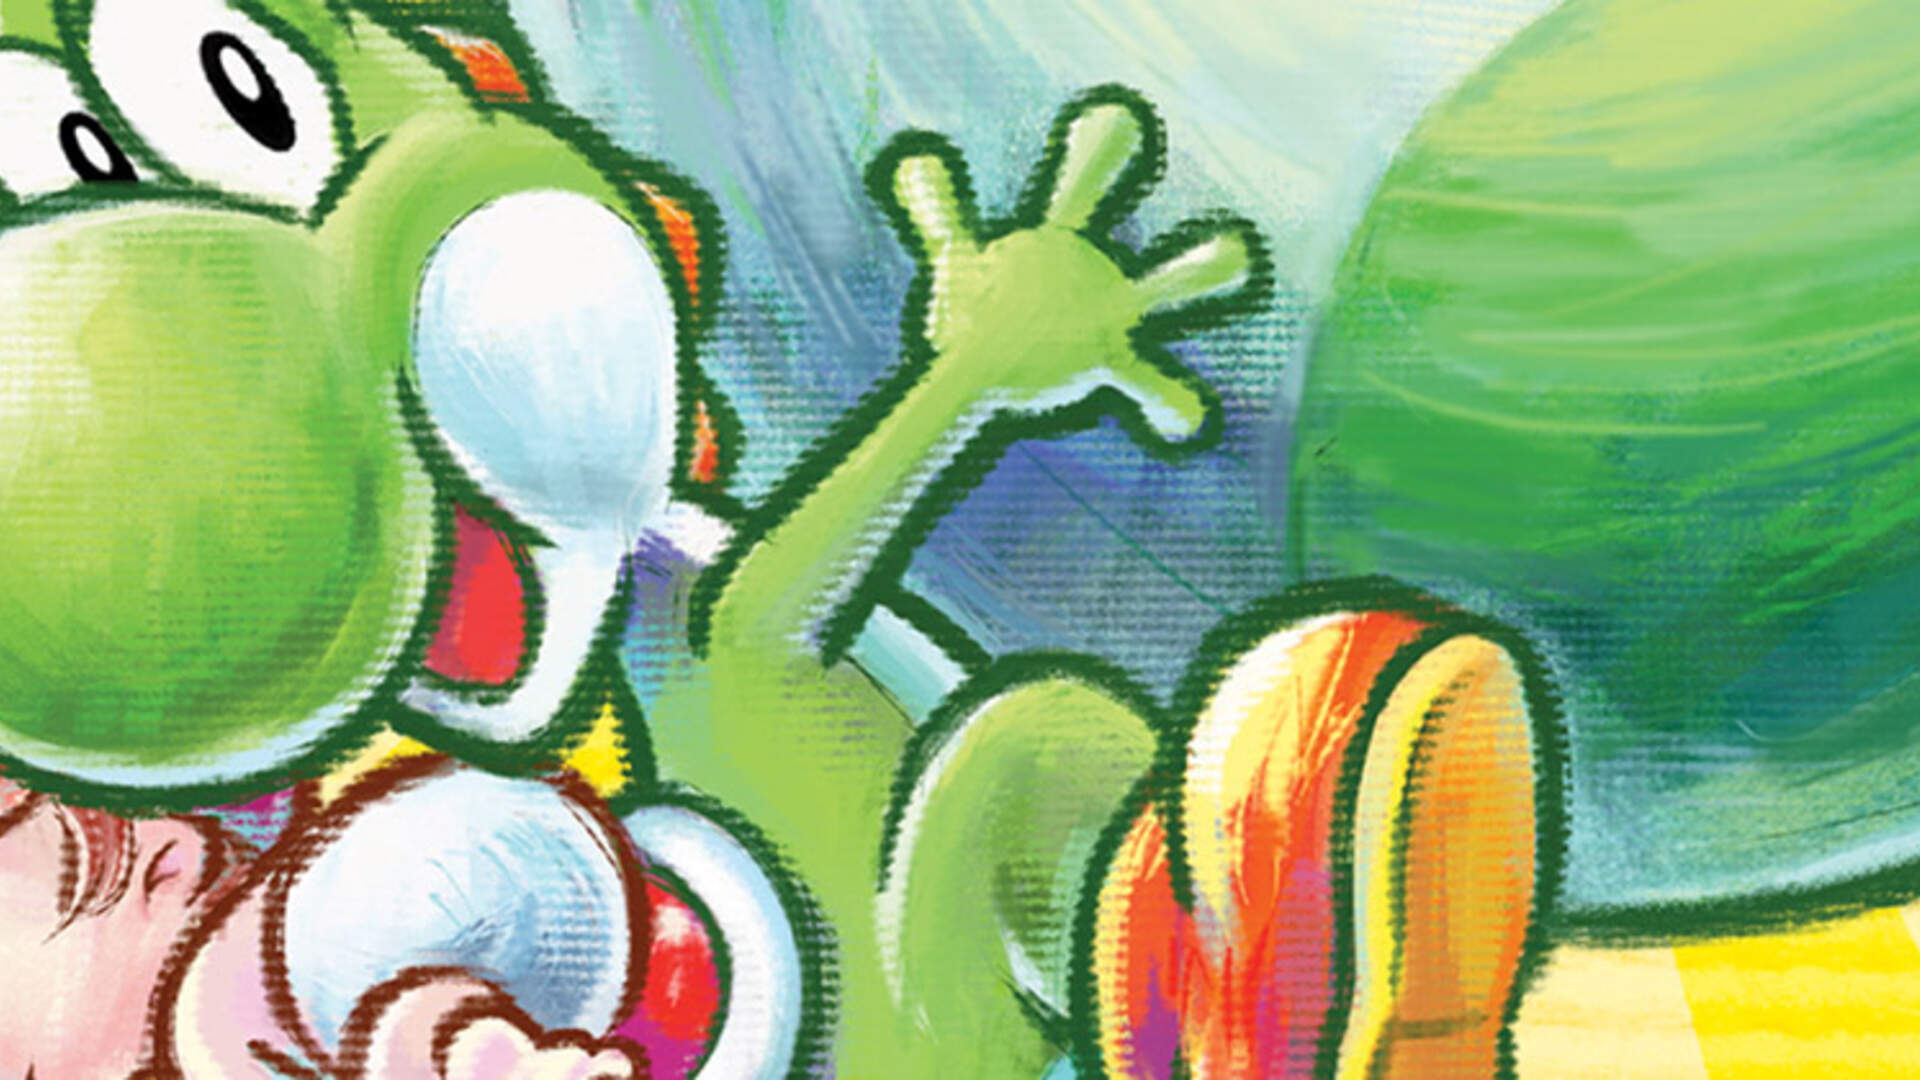 Yoshi's New Island 3DS Review: Damn Straight It's a Baby Game